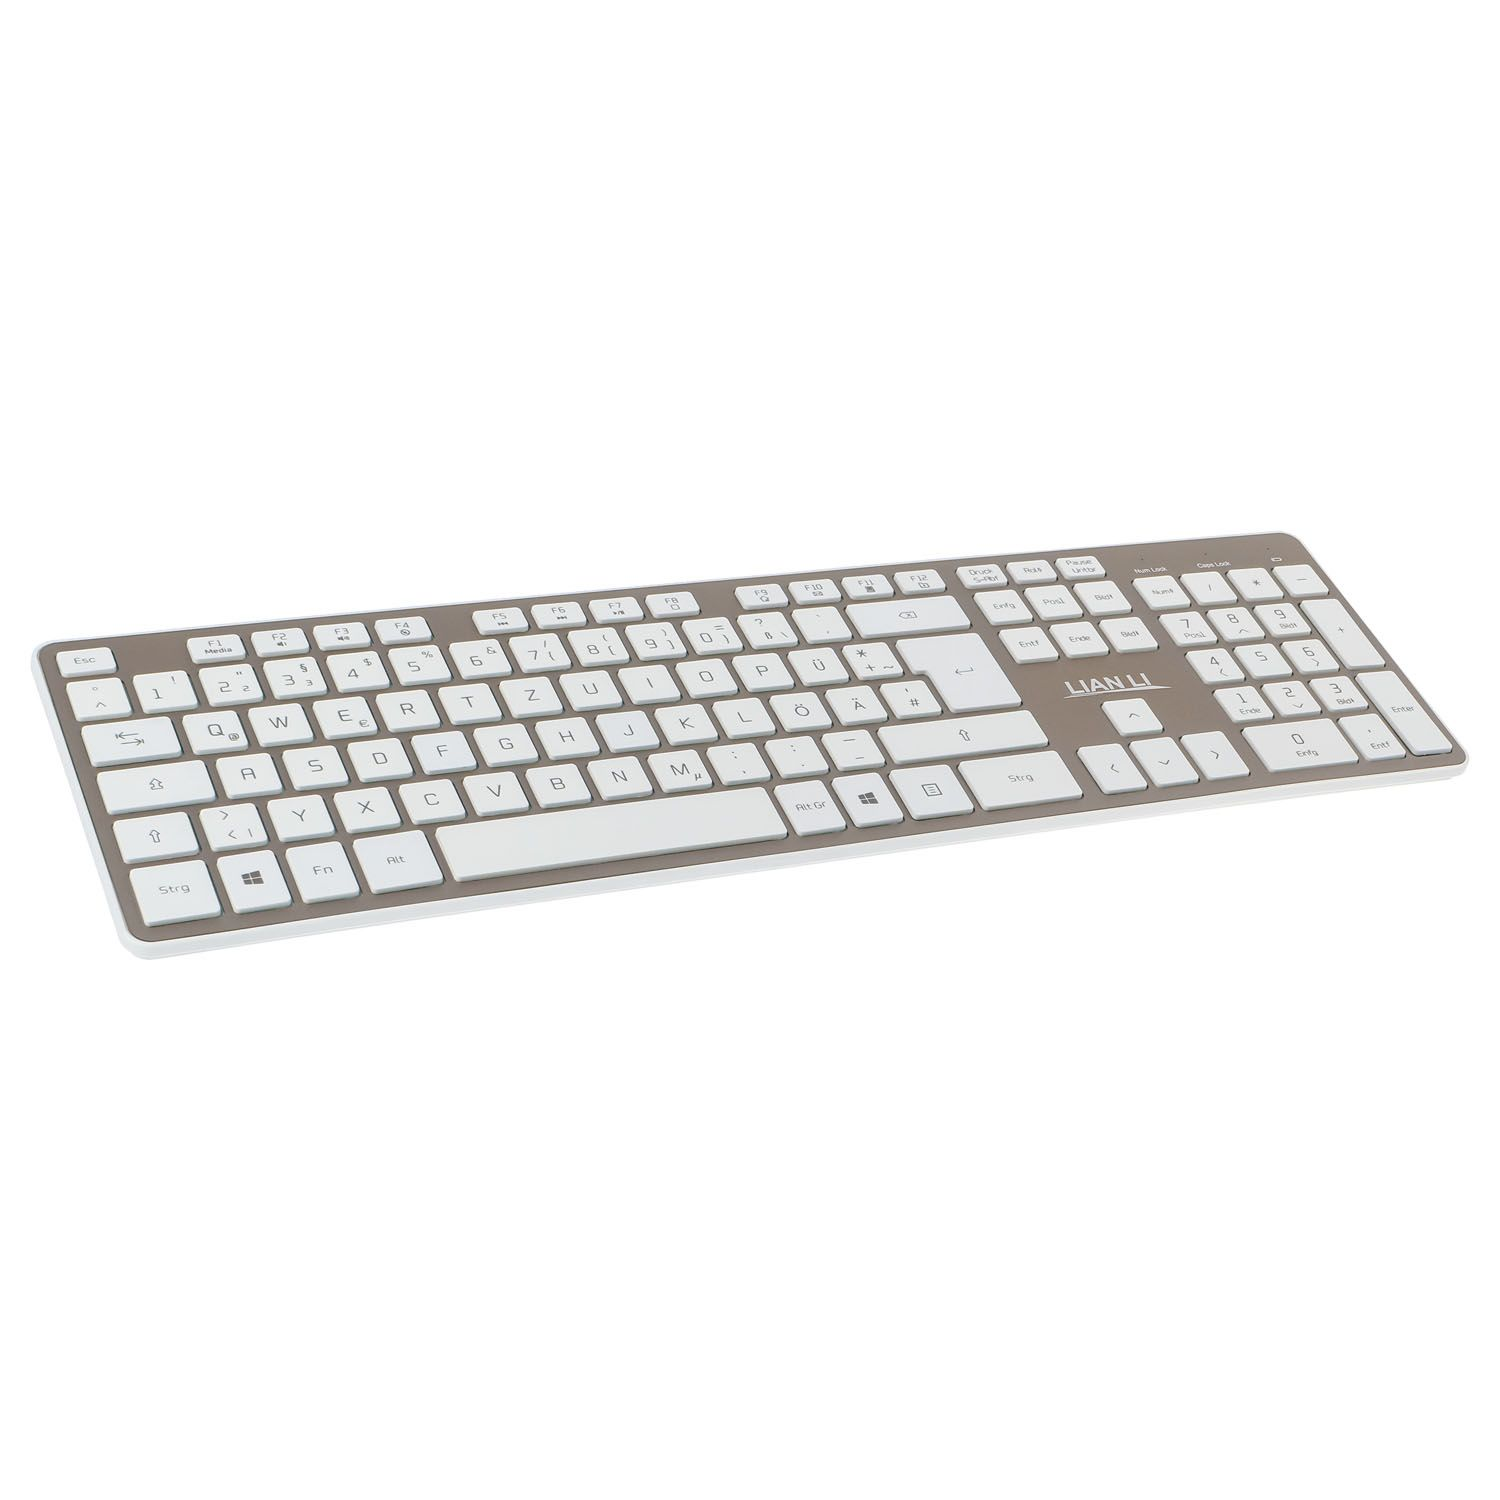 LIAN-LI KB-01W-GD BLUETOOTH KEYBOARD - GOLD KB-01WGD (UK)